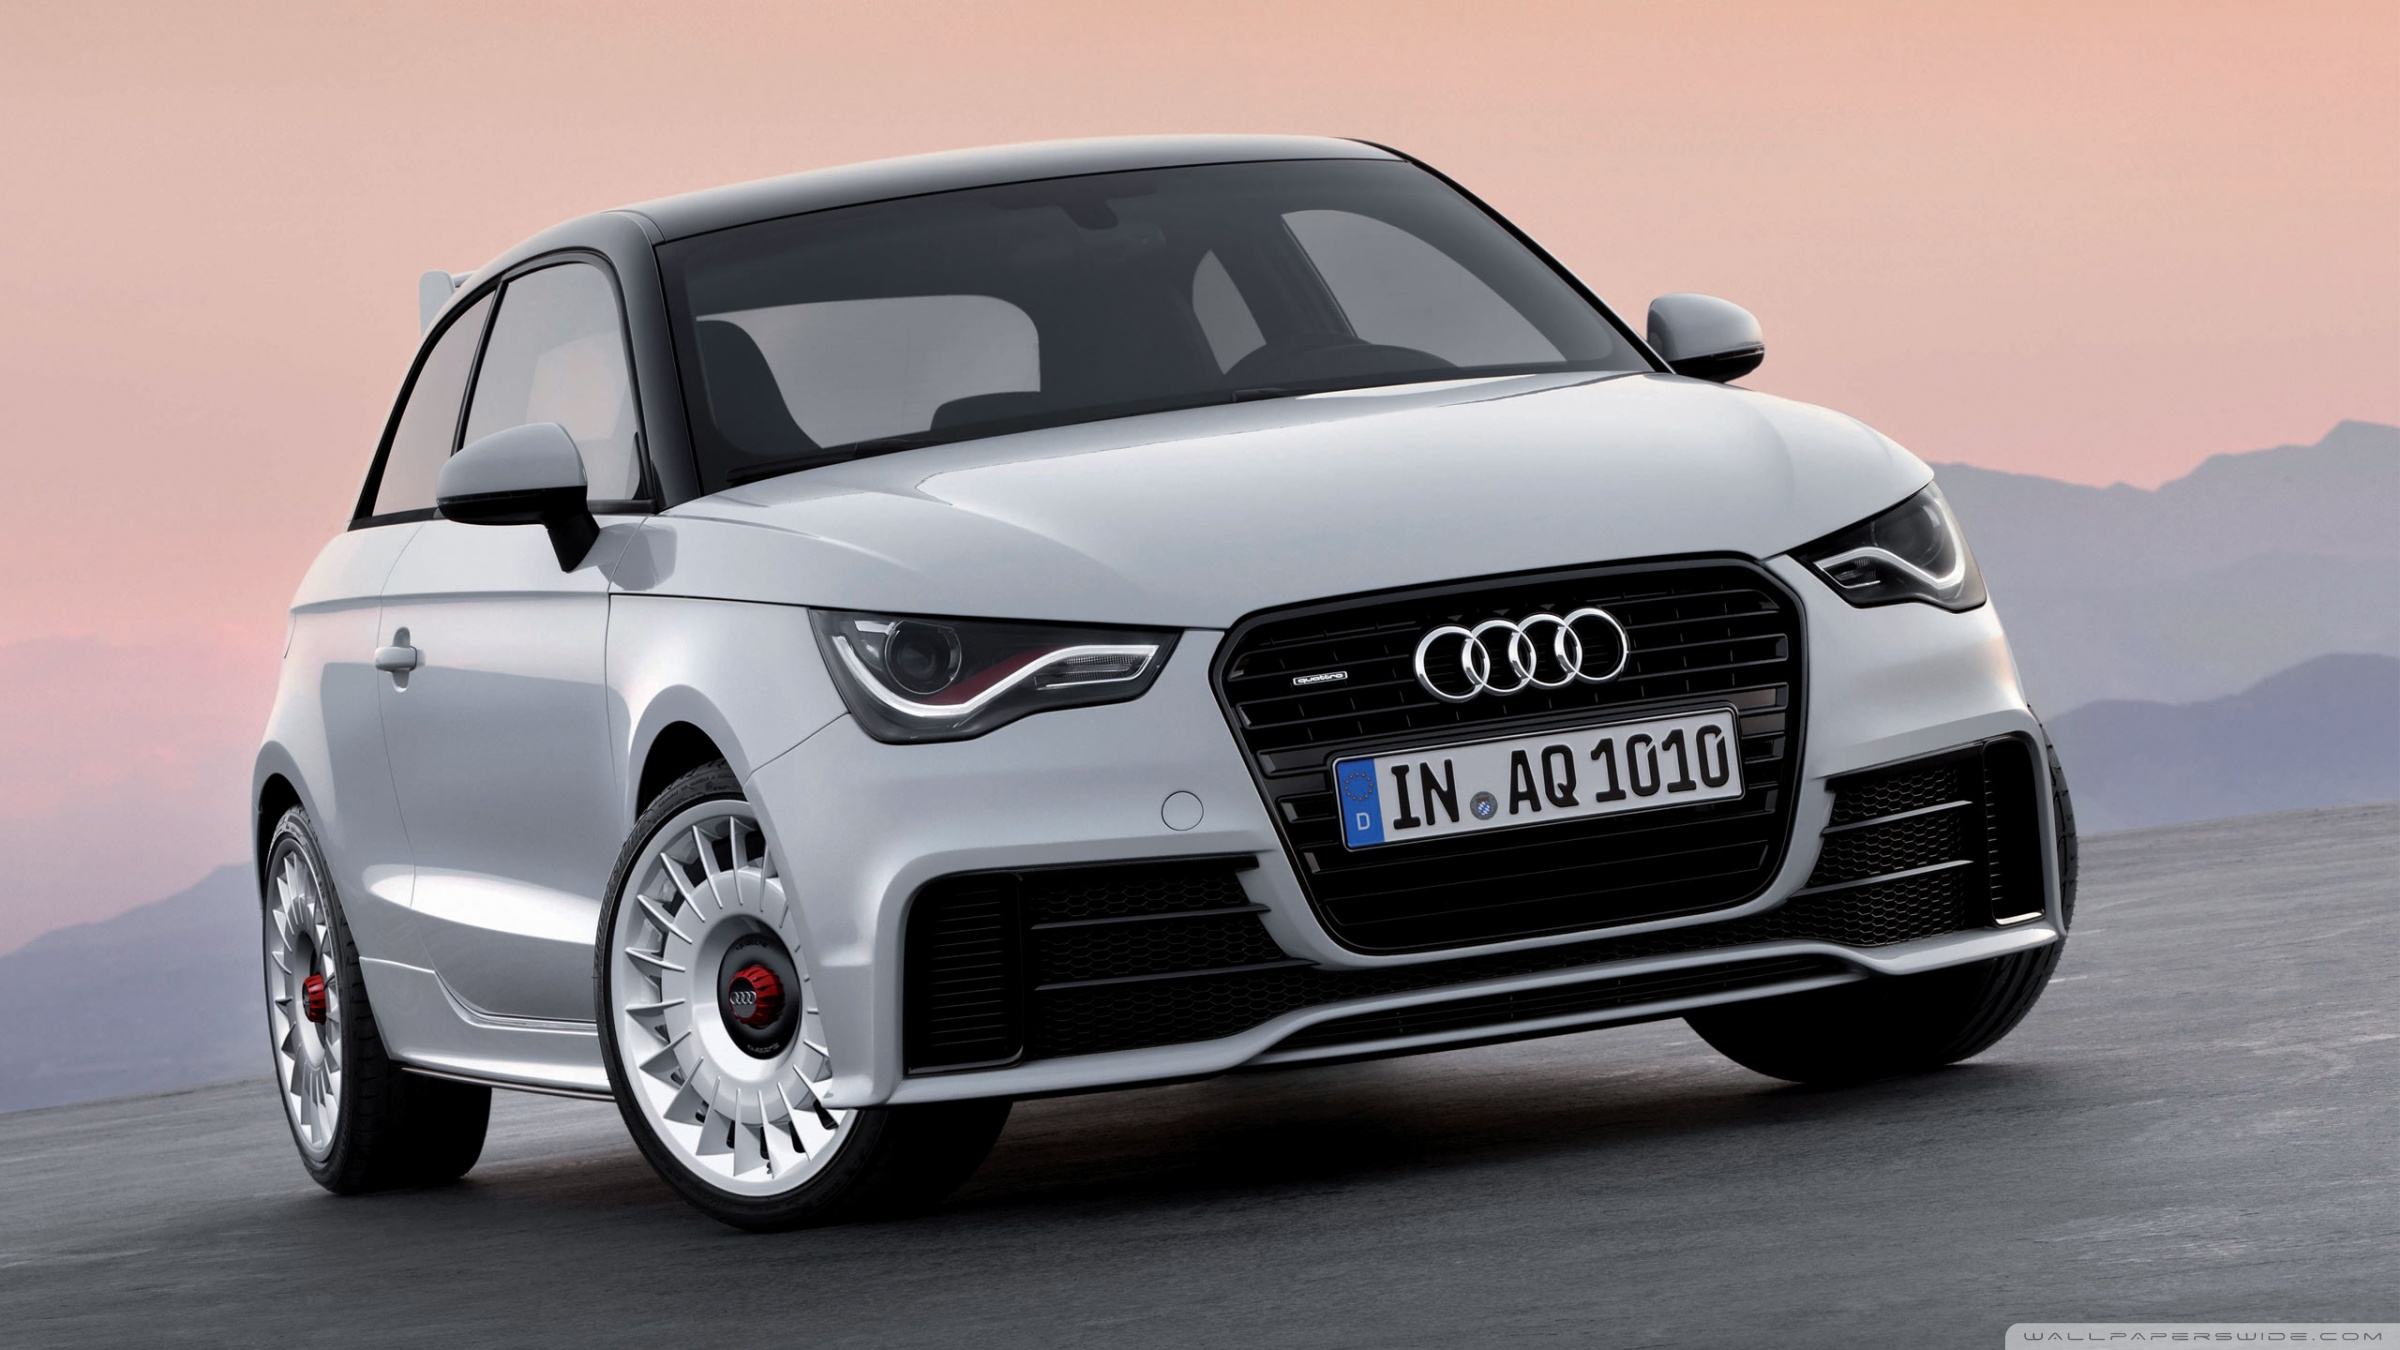 2400x1350 - Audi A1 Wallpapers 4